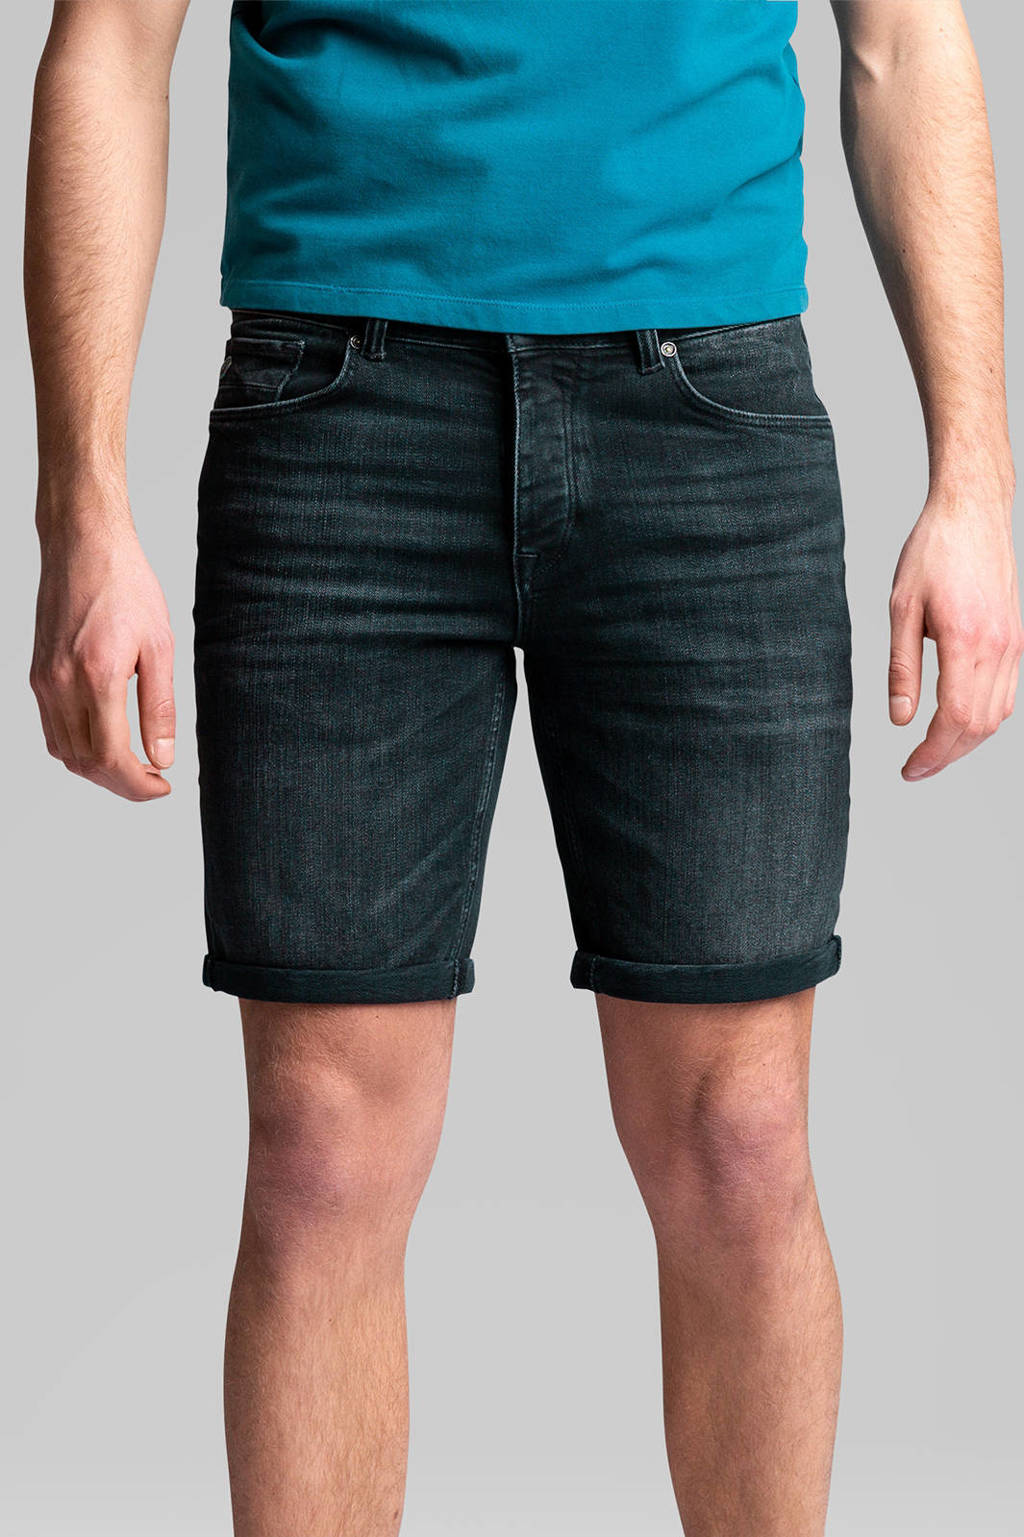 Cast Iron jeans short Cope black faded stretch, Black Faded Stretch